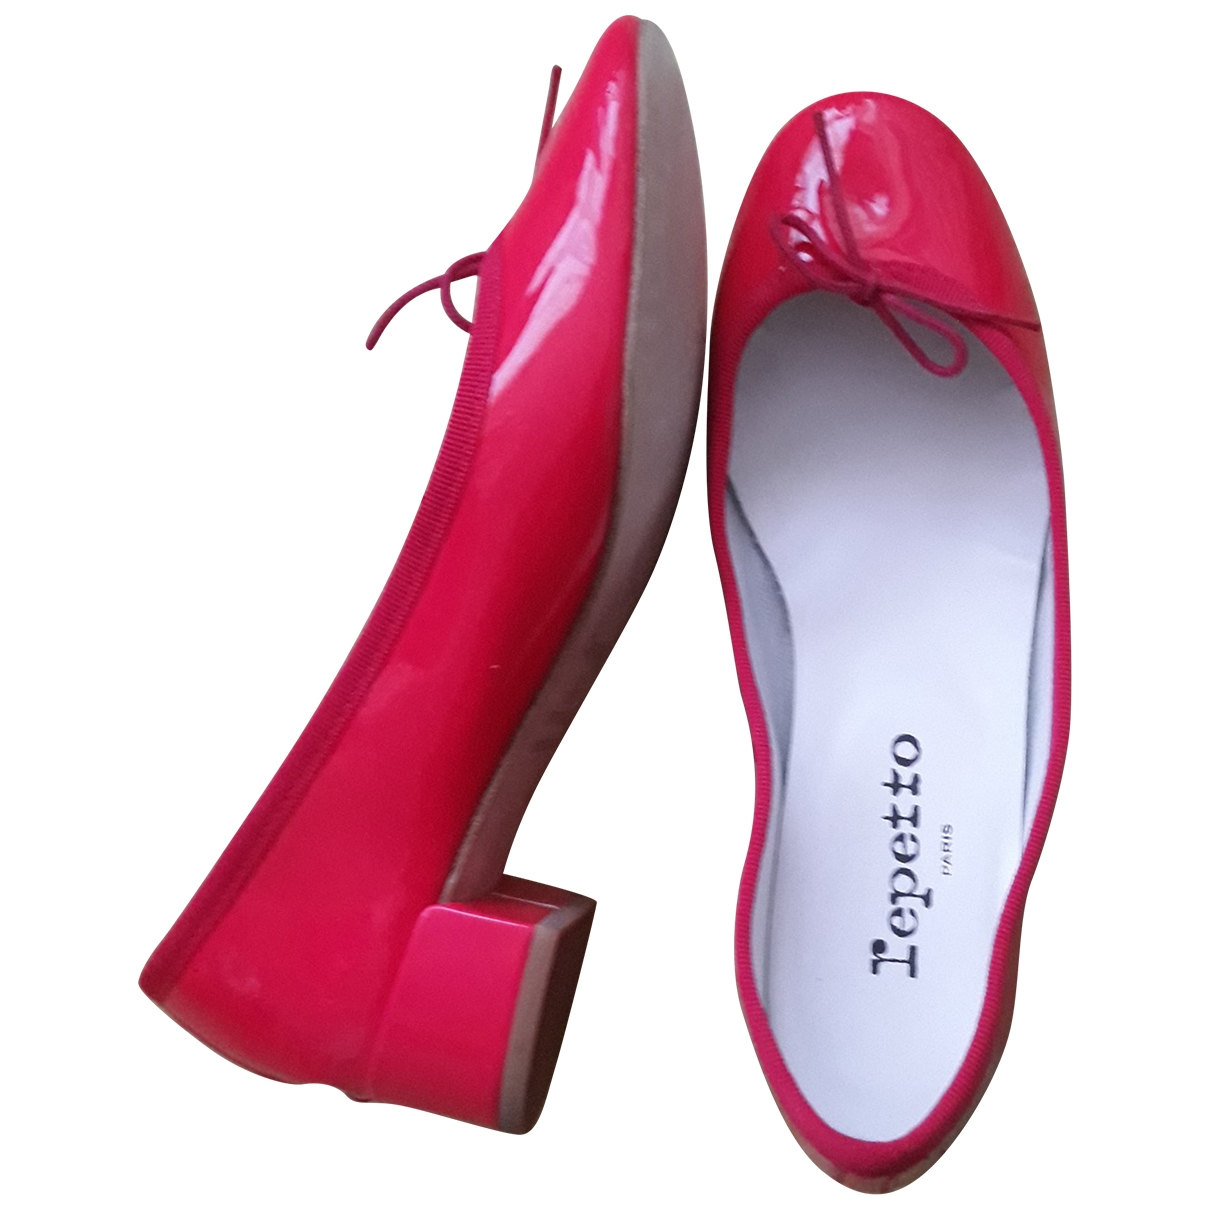 Repetto \N Pink Patent leather Heels for Women 37 EU